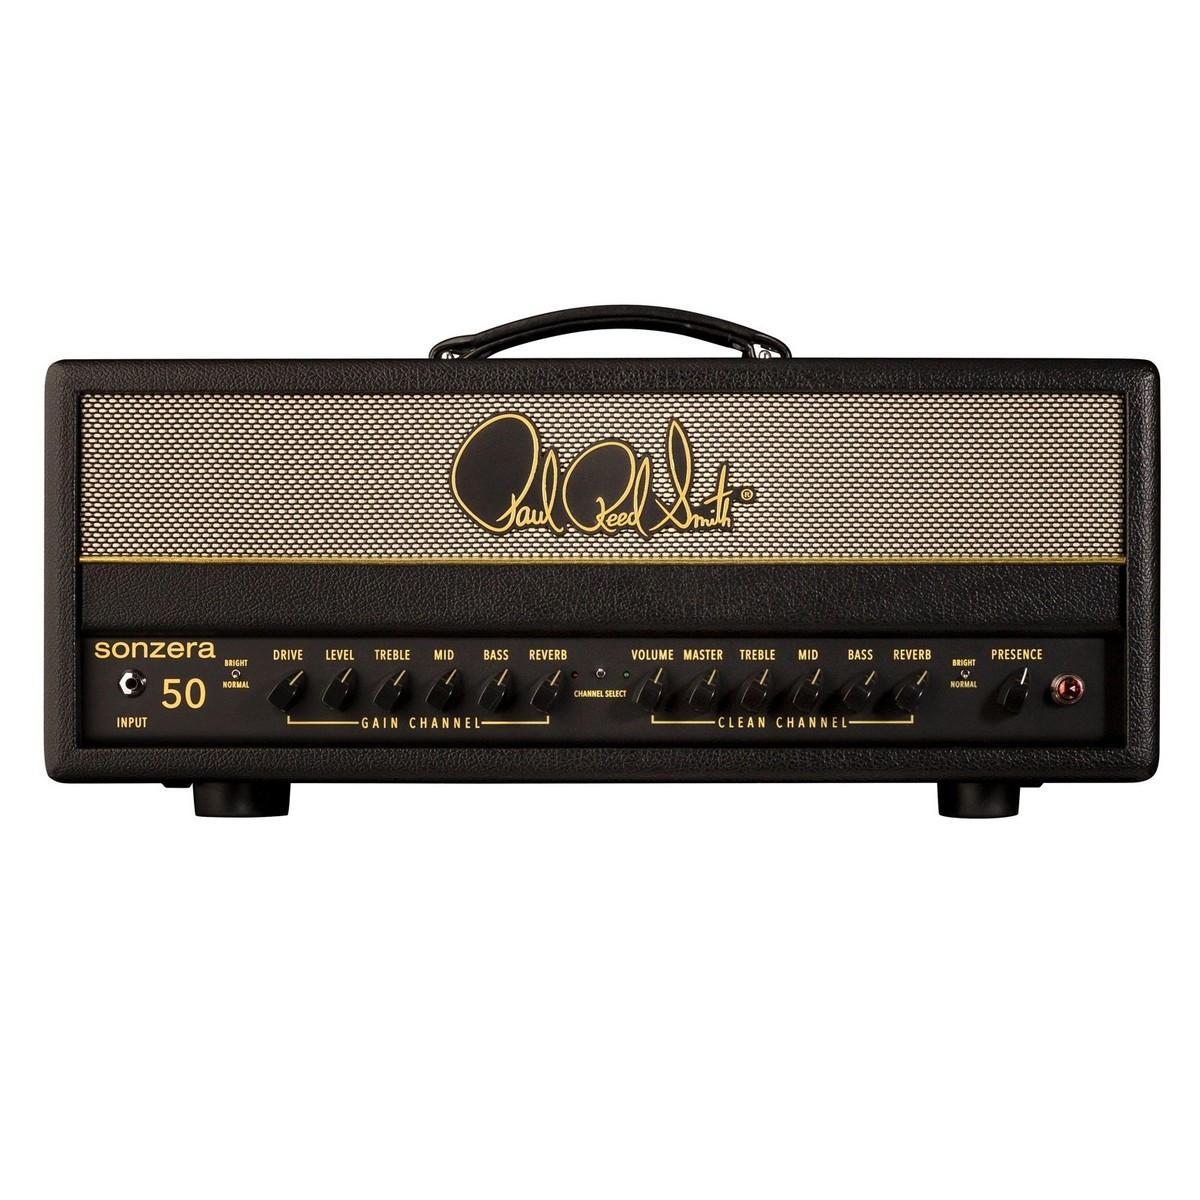 prs sonzera 50 guitar head amplifier at gear4music. Black Bedroom Furniture Sets. Home Design Ideas